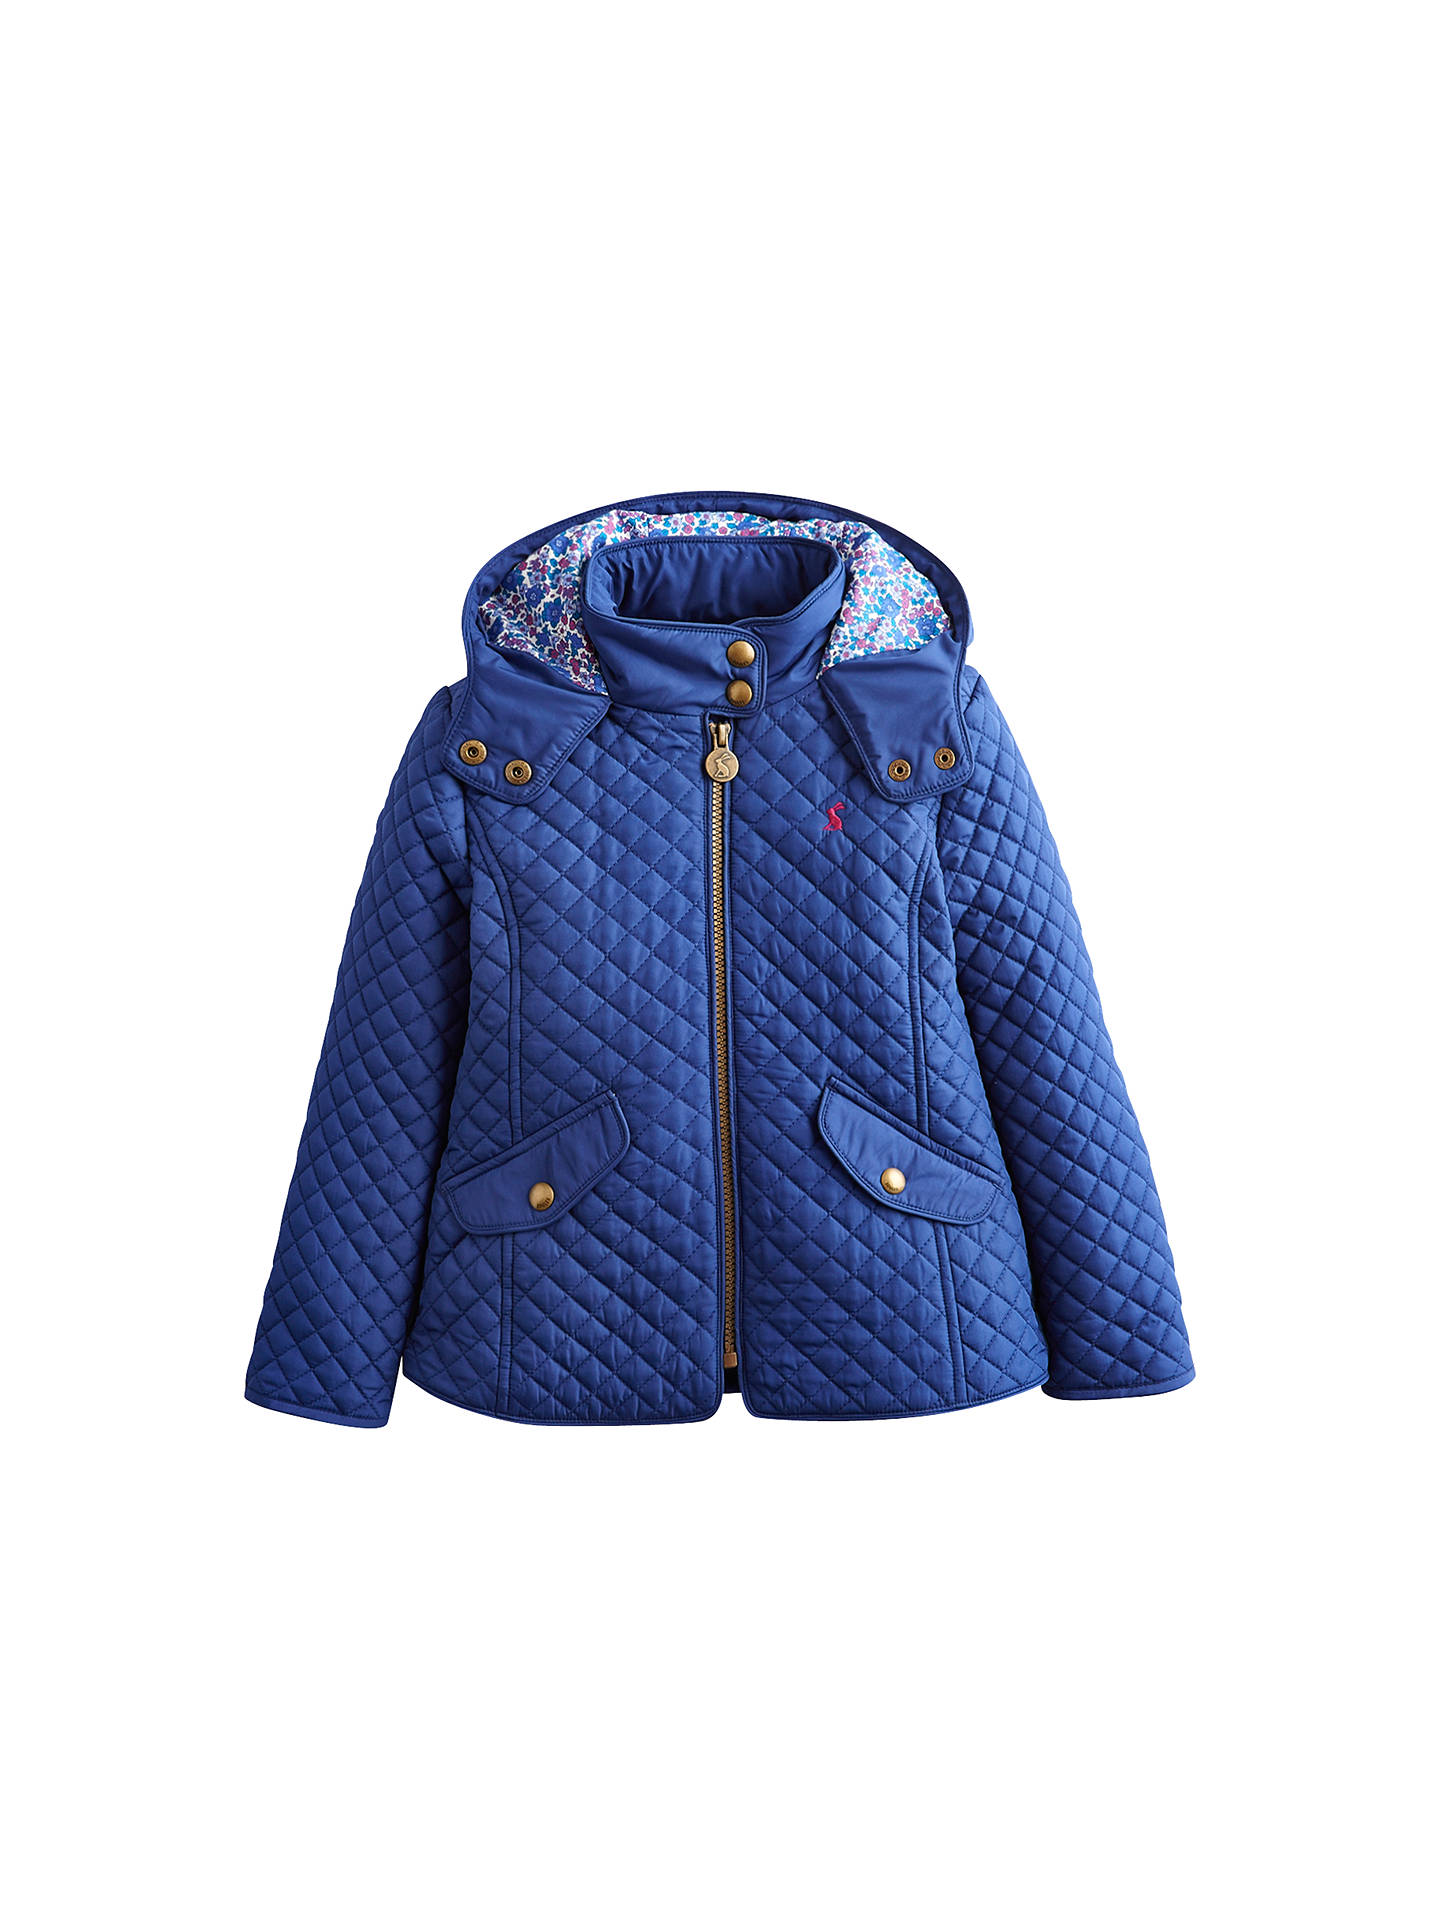 8443bd0fe60d Little Joule Girls  Quilted Jacket